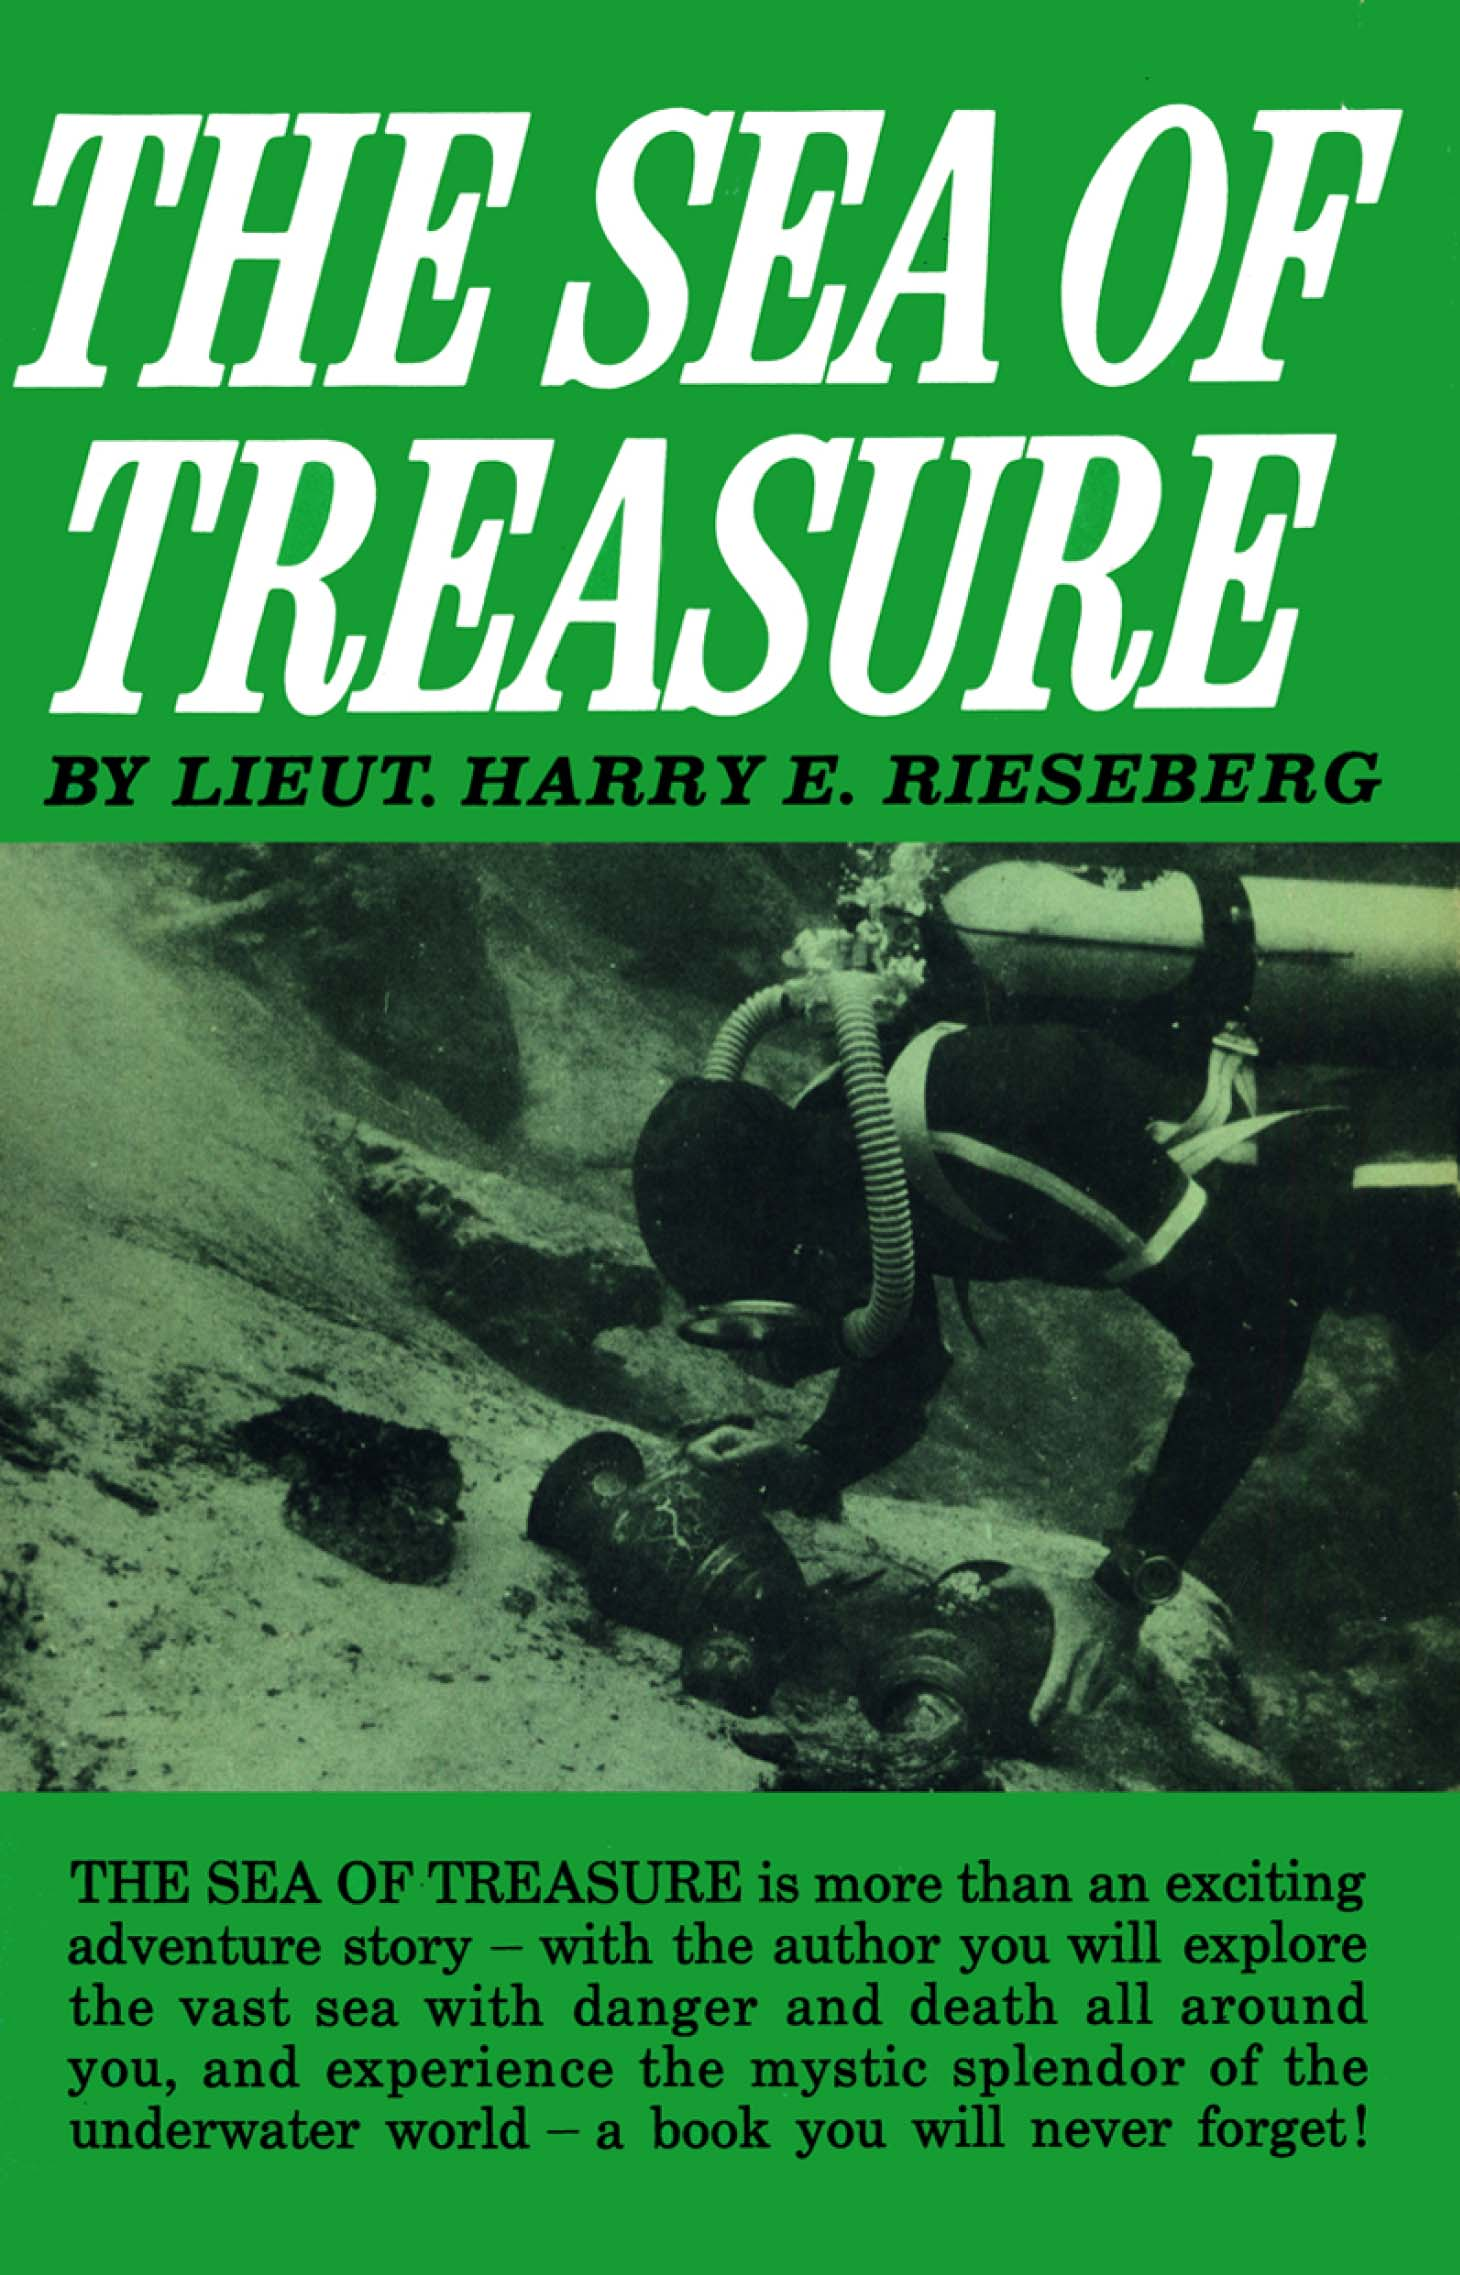 The Sea of Treasure